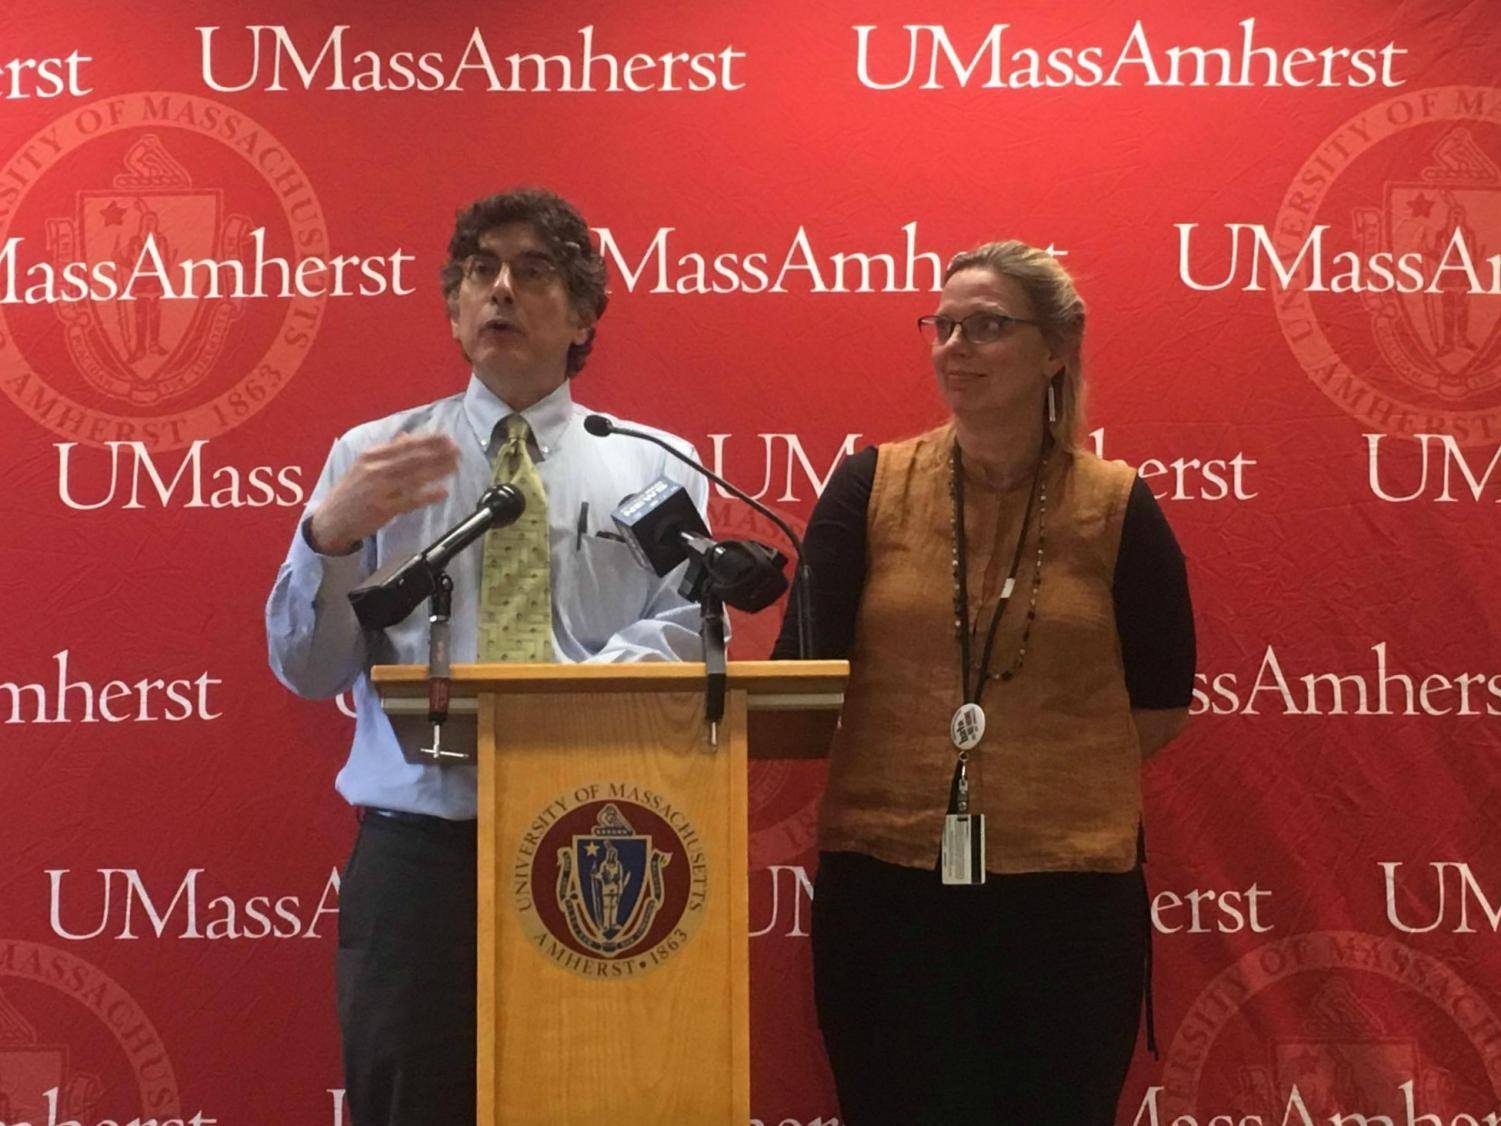 University Health Services Executive Director Dr. George Corey (left) and Public Health Nurse Ann Becker (right) address a crowd at a press conference in the Campus Center on Tuesday. (Cameron Merritt/Amherst Wire)